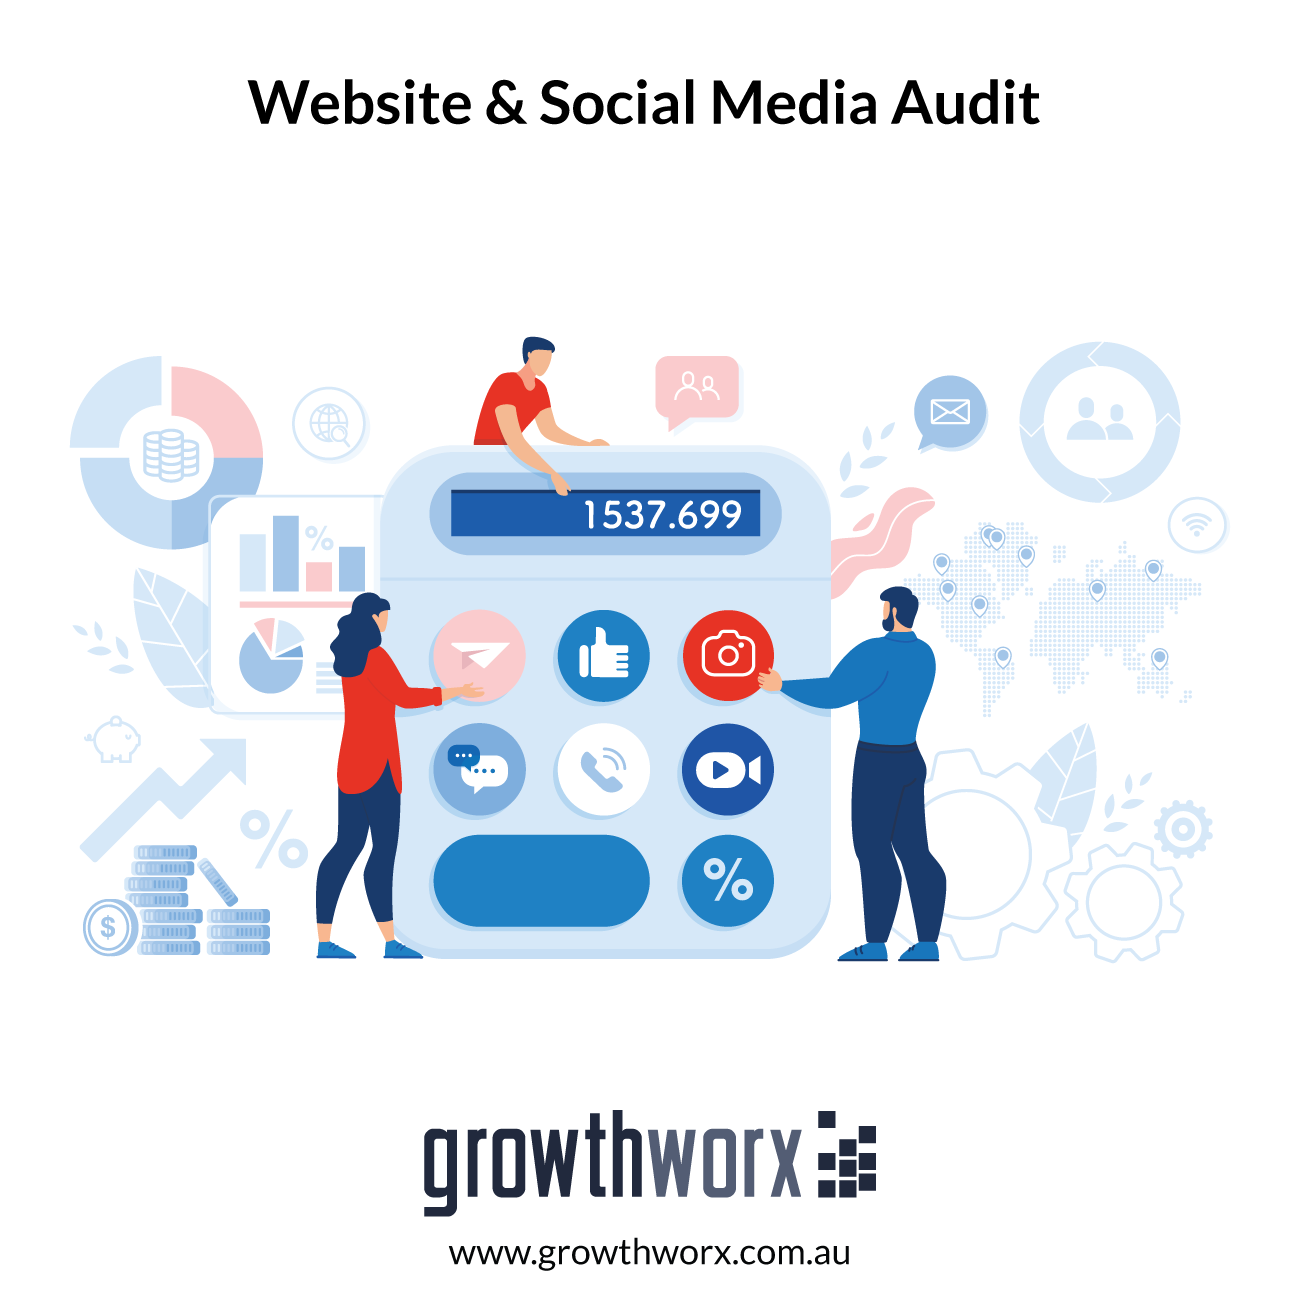 Complete an audit of your website and social media, and provide a content strategy 1